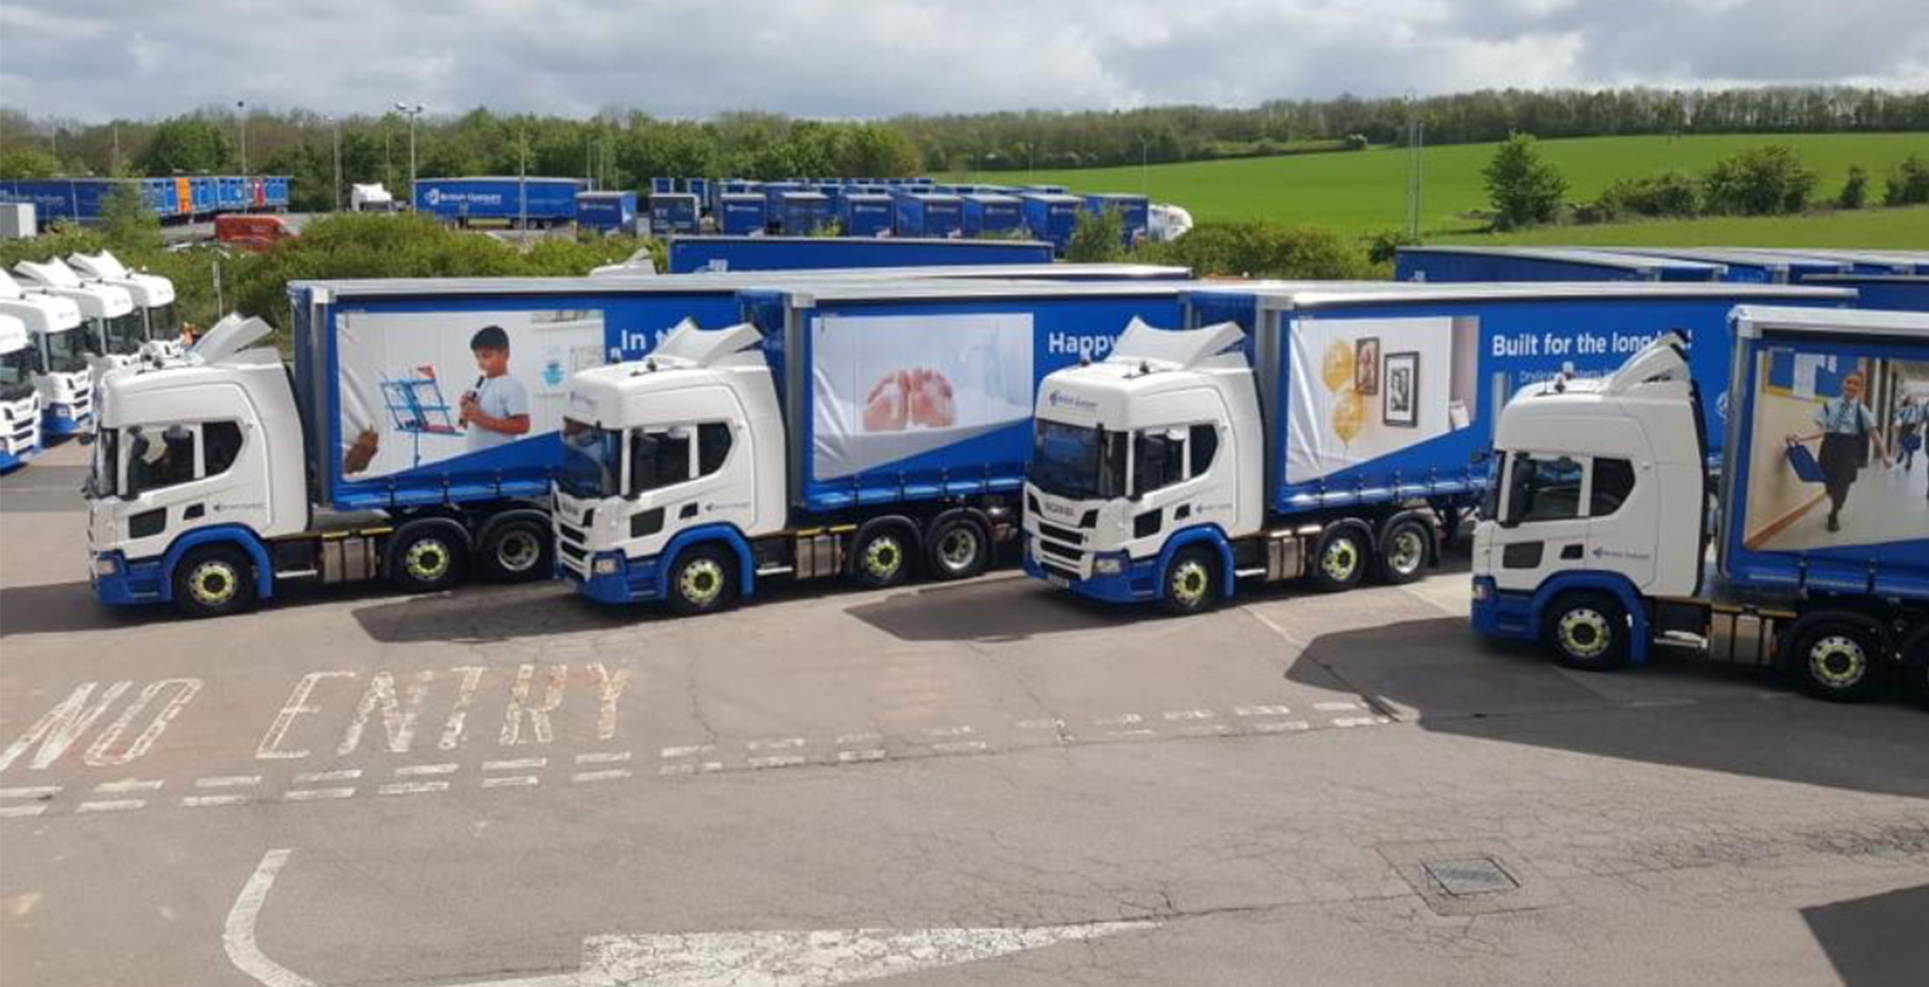 Hub - Direct Vision Standard DVS - British Gypsum Scania 4 5 star rigids curtainsiders